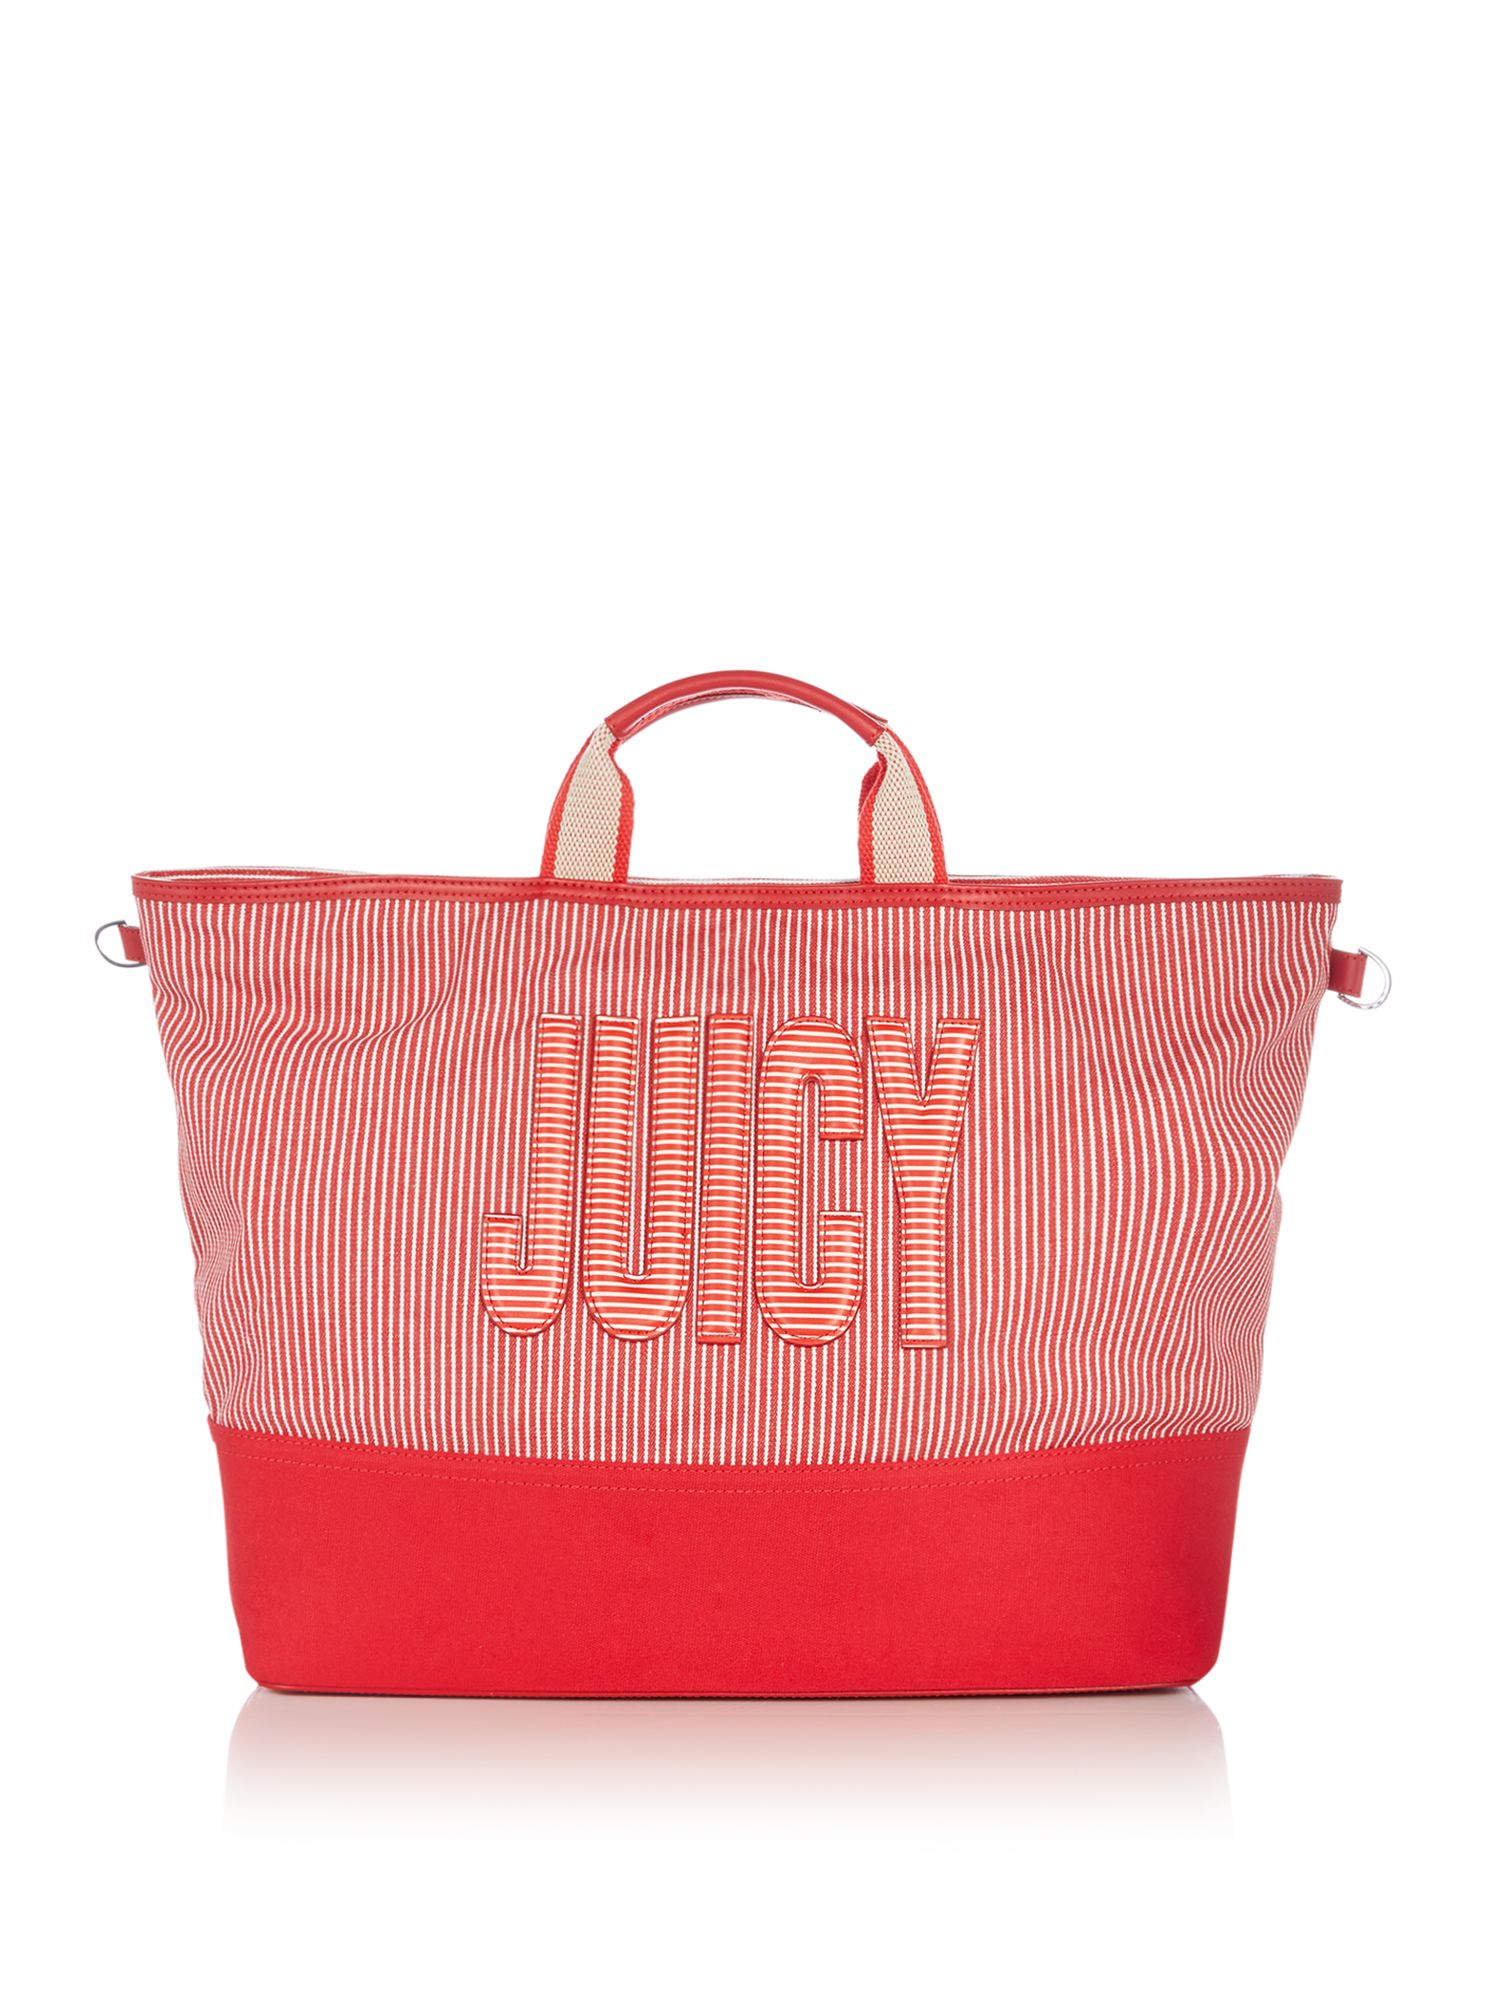 Juicy by Juicy Couture Parker canvas tote bag, Red